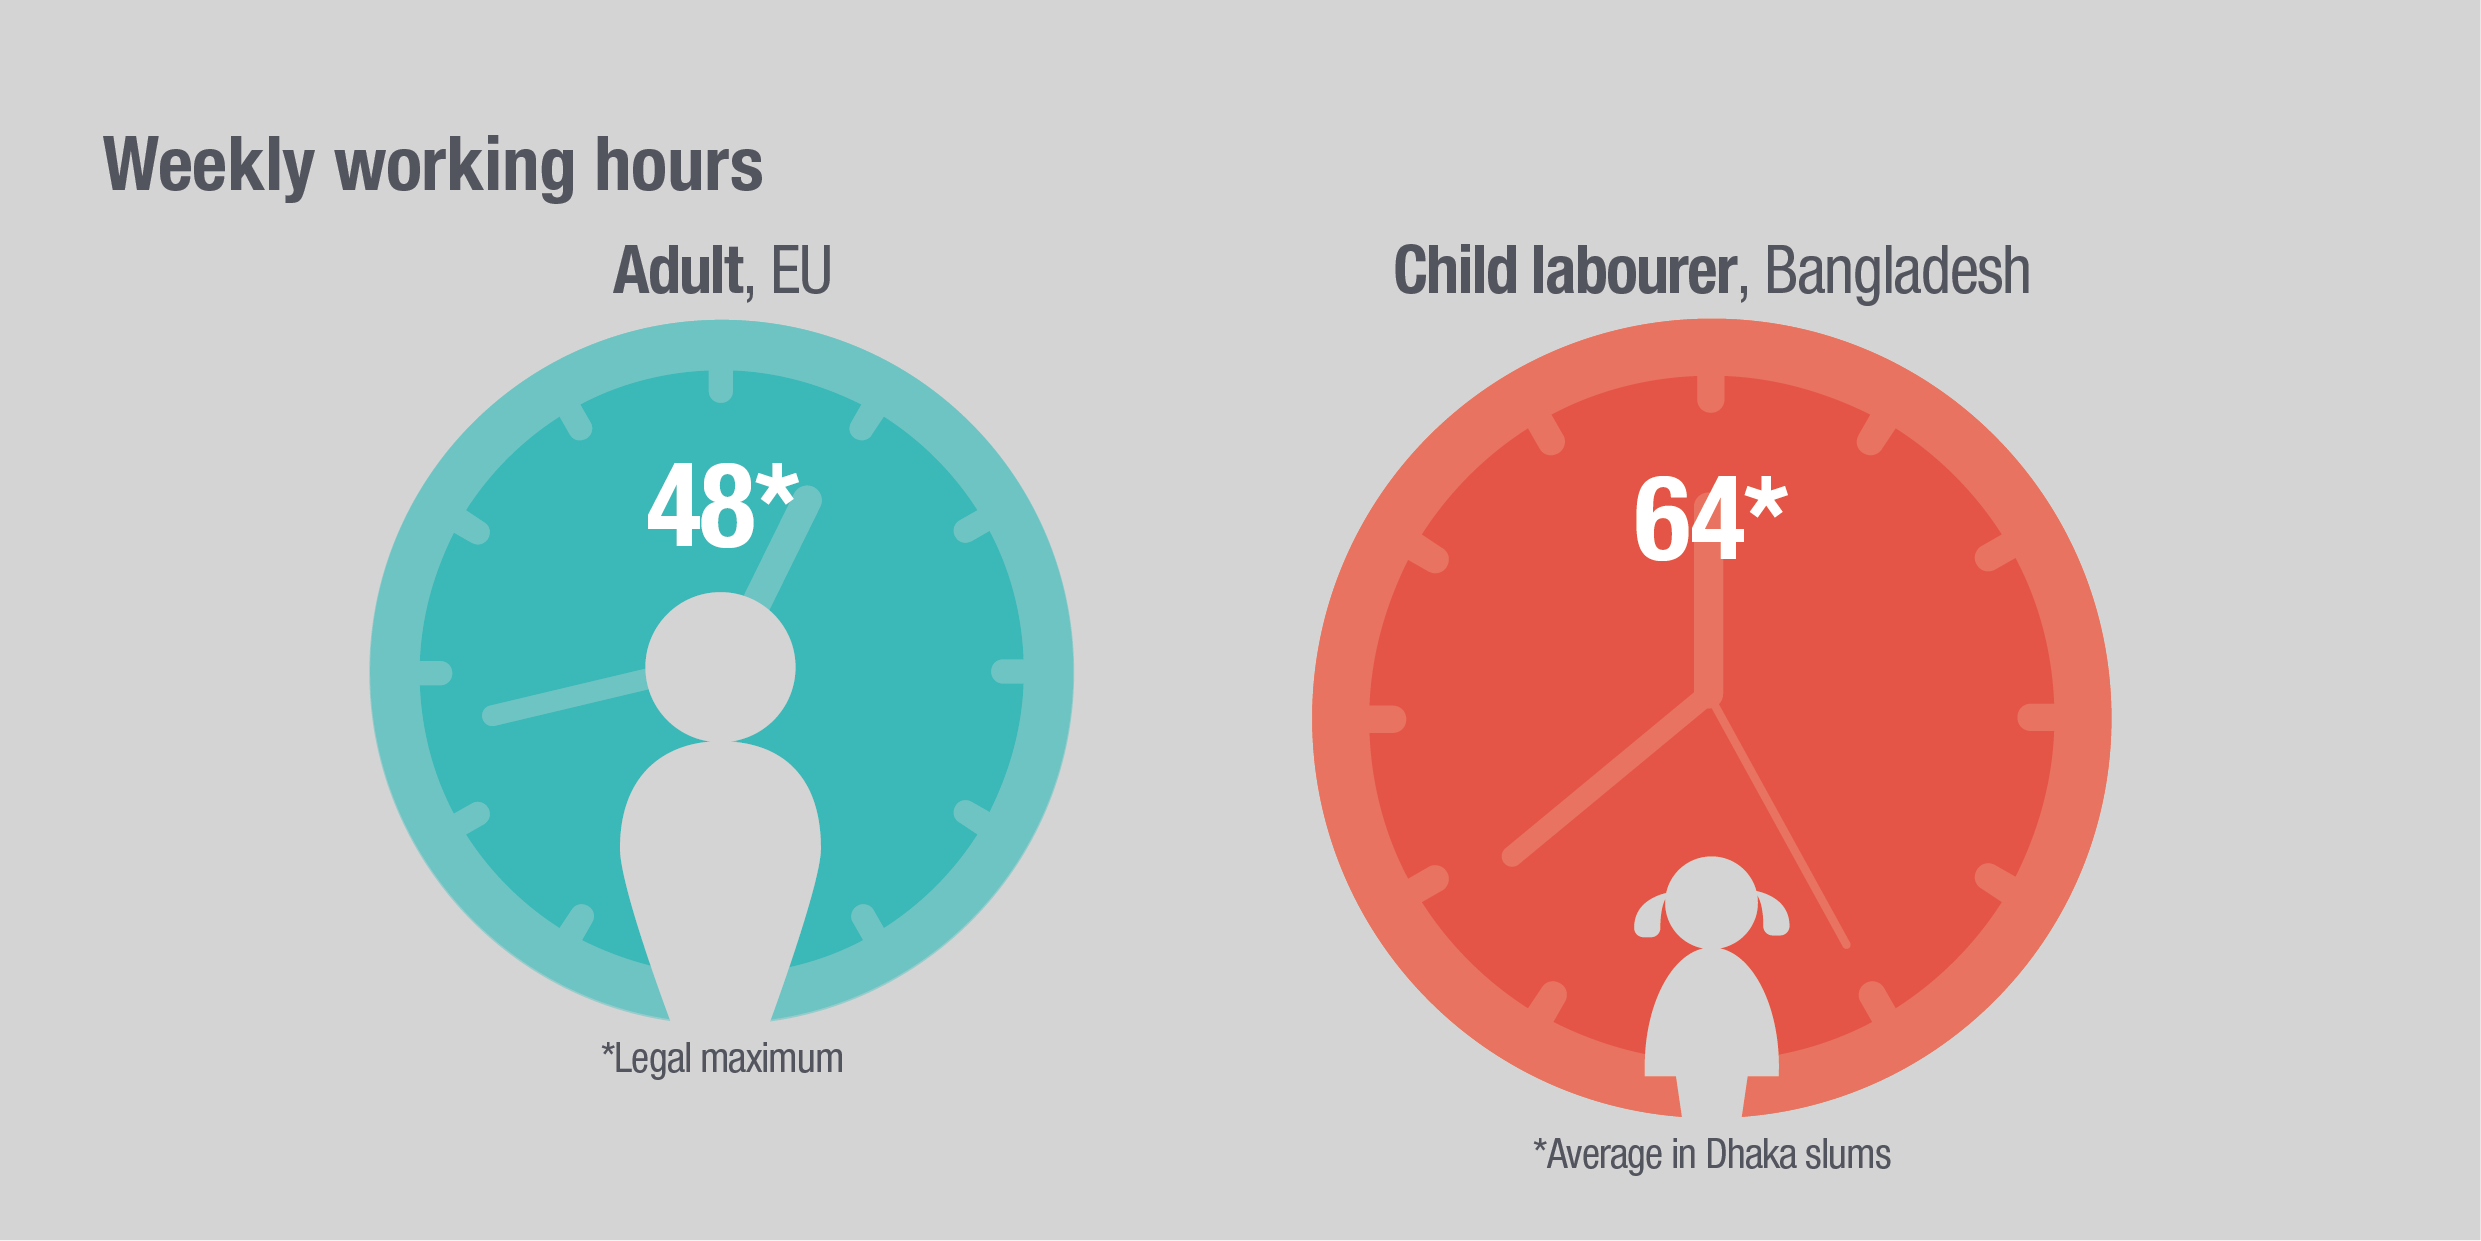 Infographic: weekly working hours of child labourers in Bangladesh vs adults in the EU